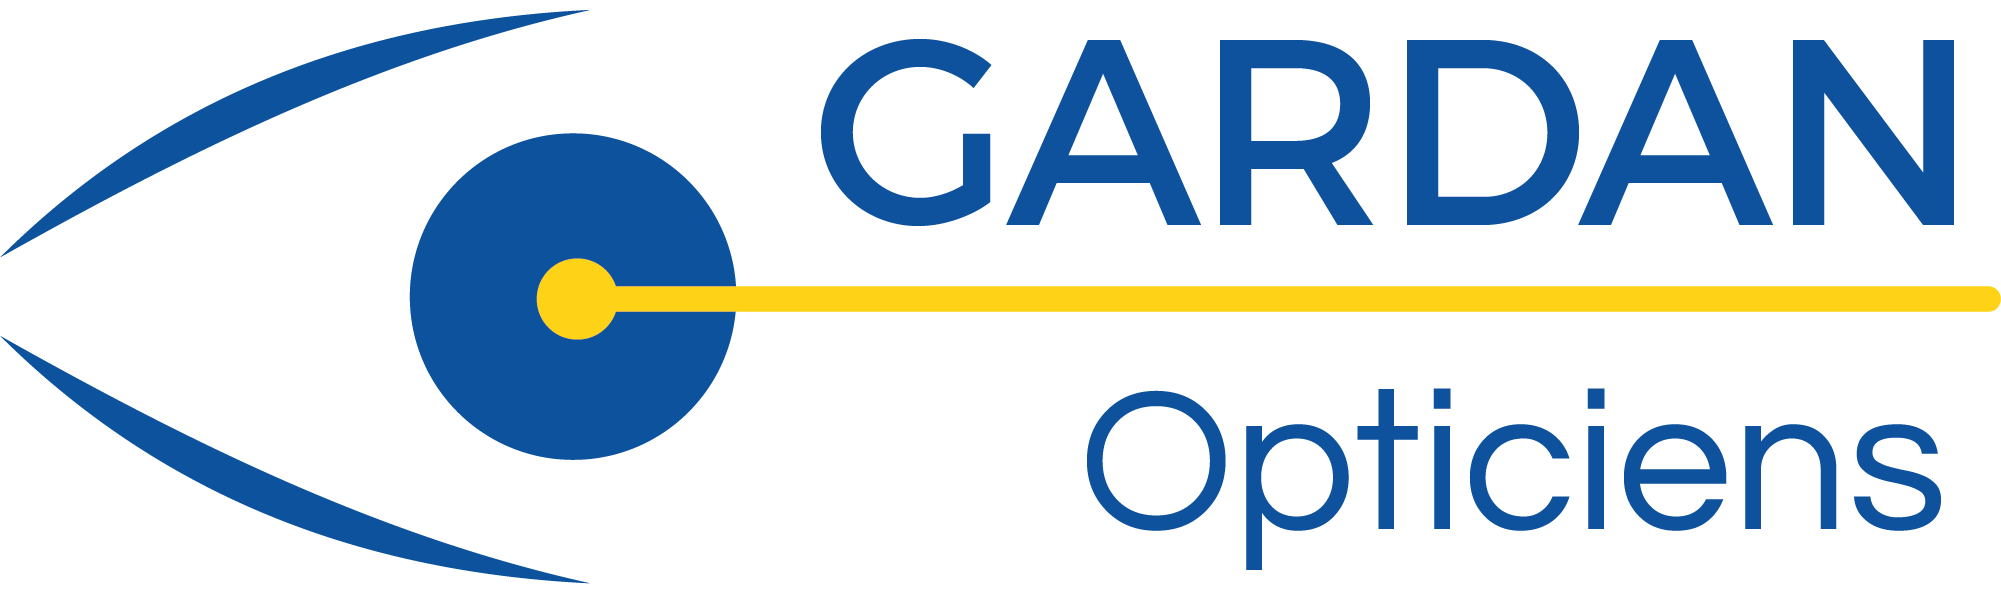 Logo de Gardan Opticiens